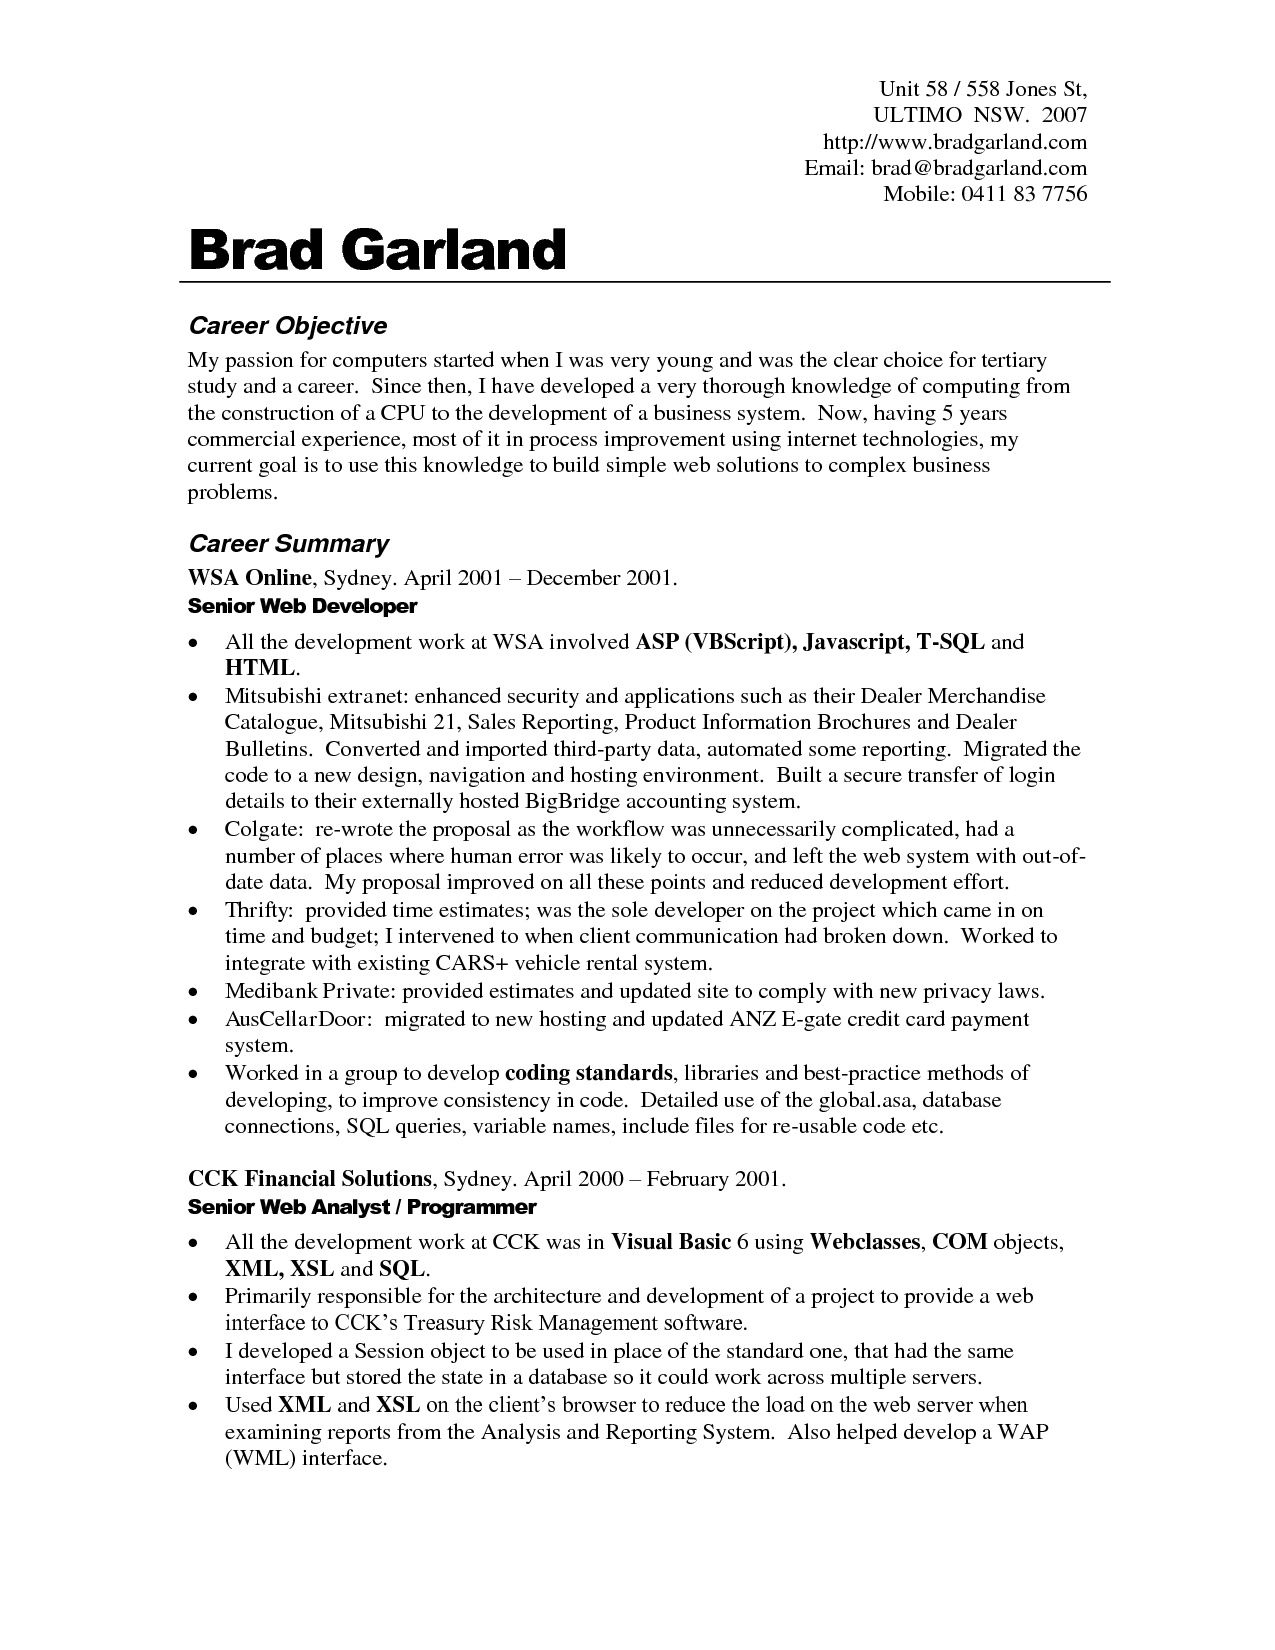 Awesome Career Objective Resume Examples For Example Your Training Goals And  Objectives Rufoot Resumes